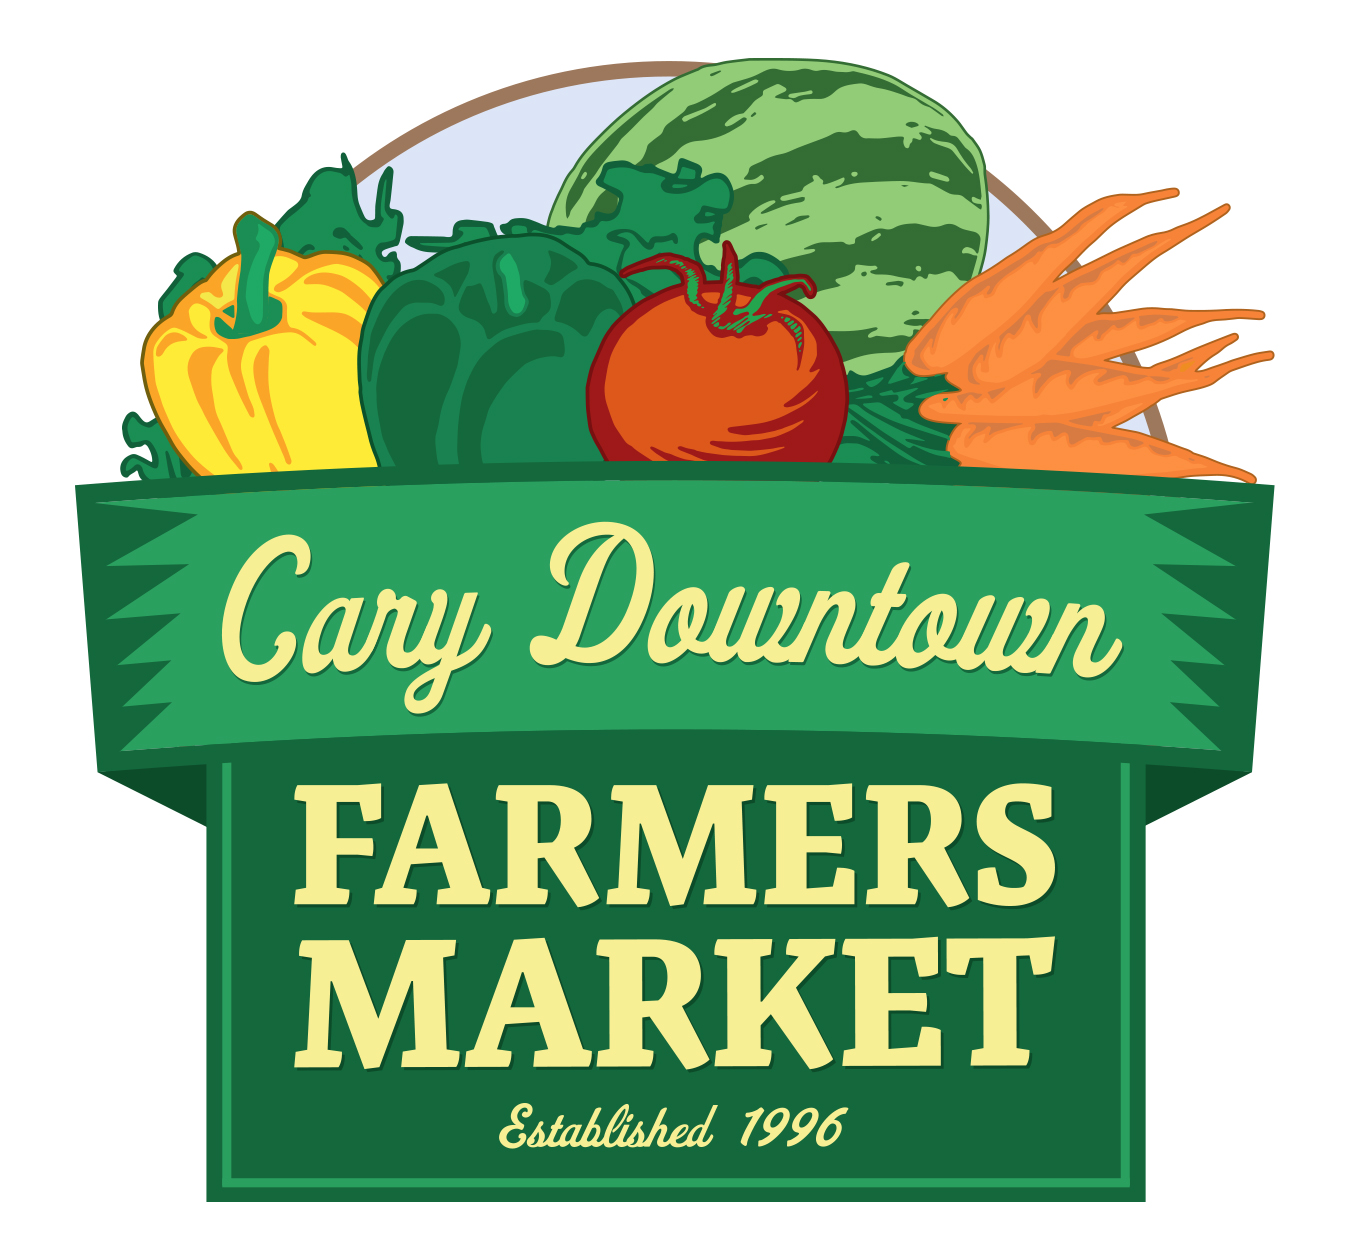 Cary Downtown Farmers Market